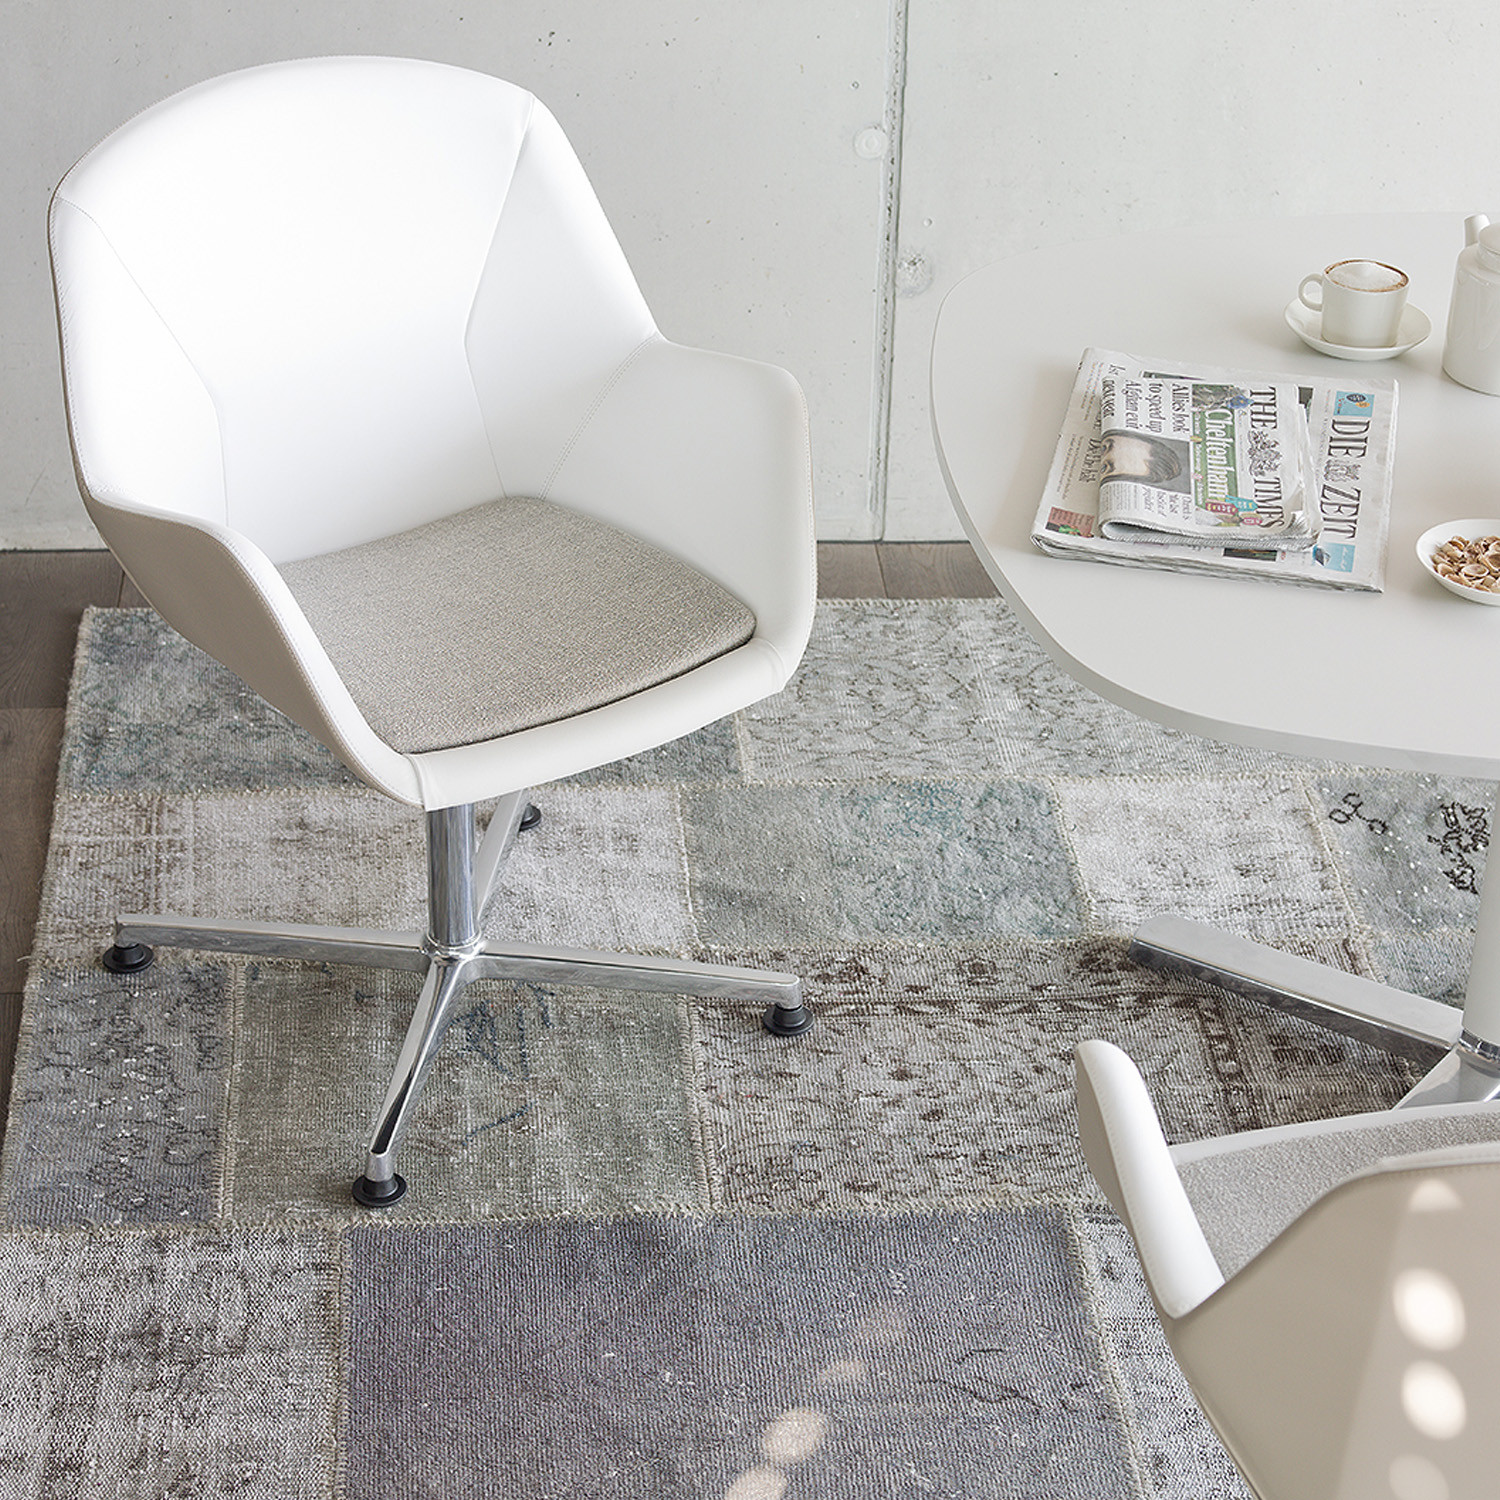 Pulse Conference Chair by Wiesner Hager